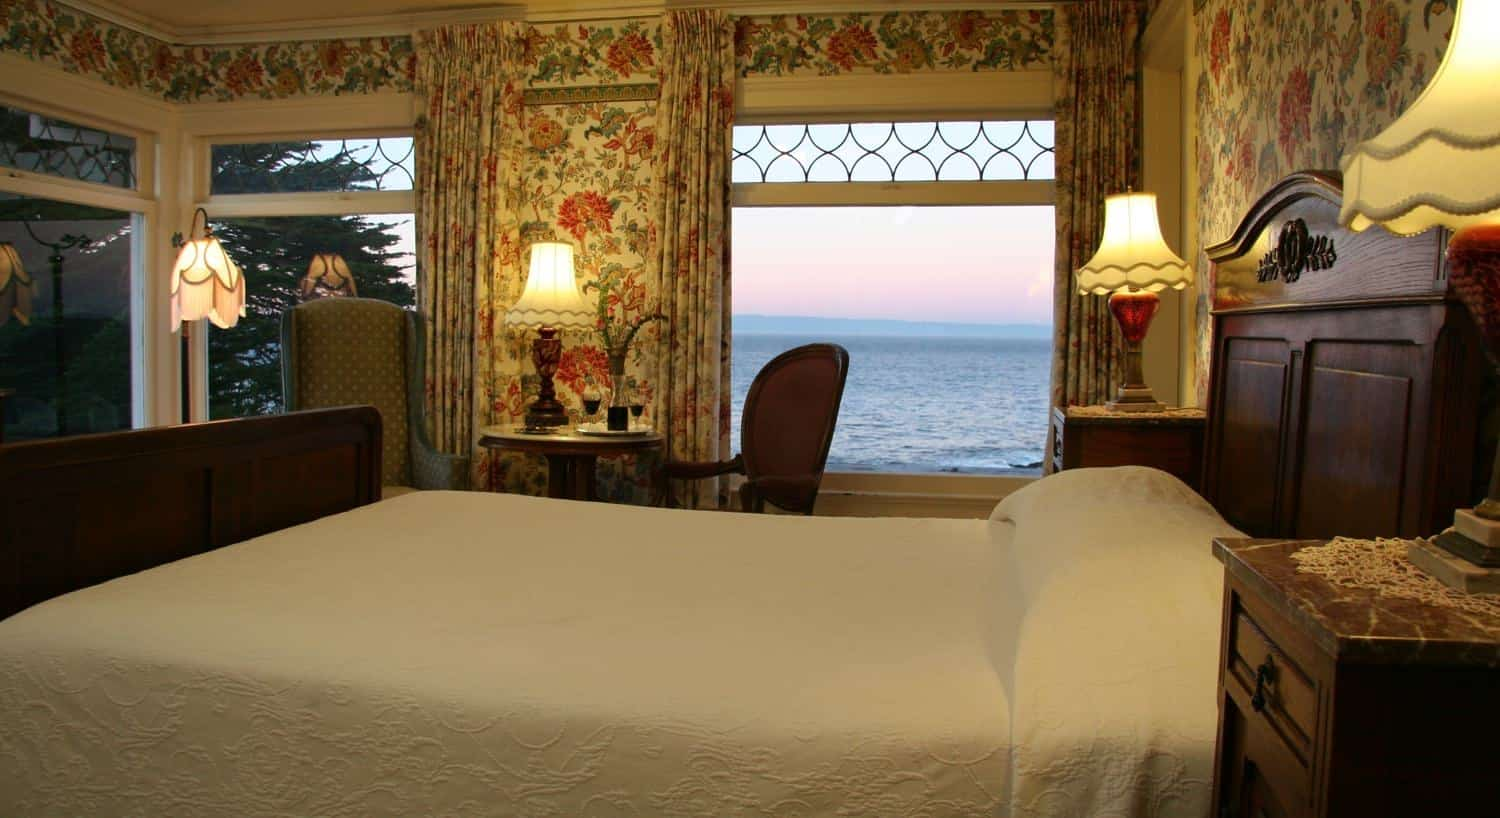 Marie guest room with floral walls, two walls of windows overlooking the ocean, carved wood bed and table with two chairs